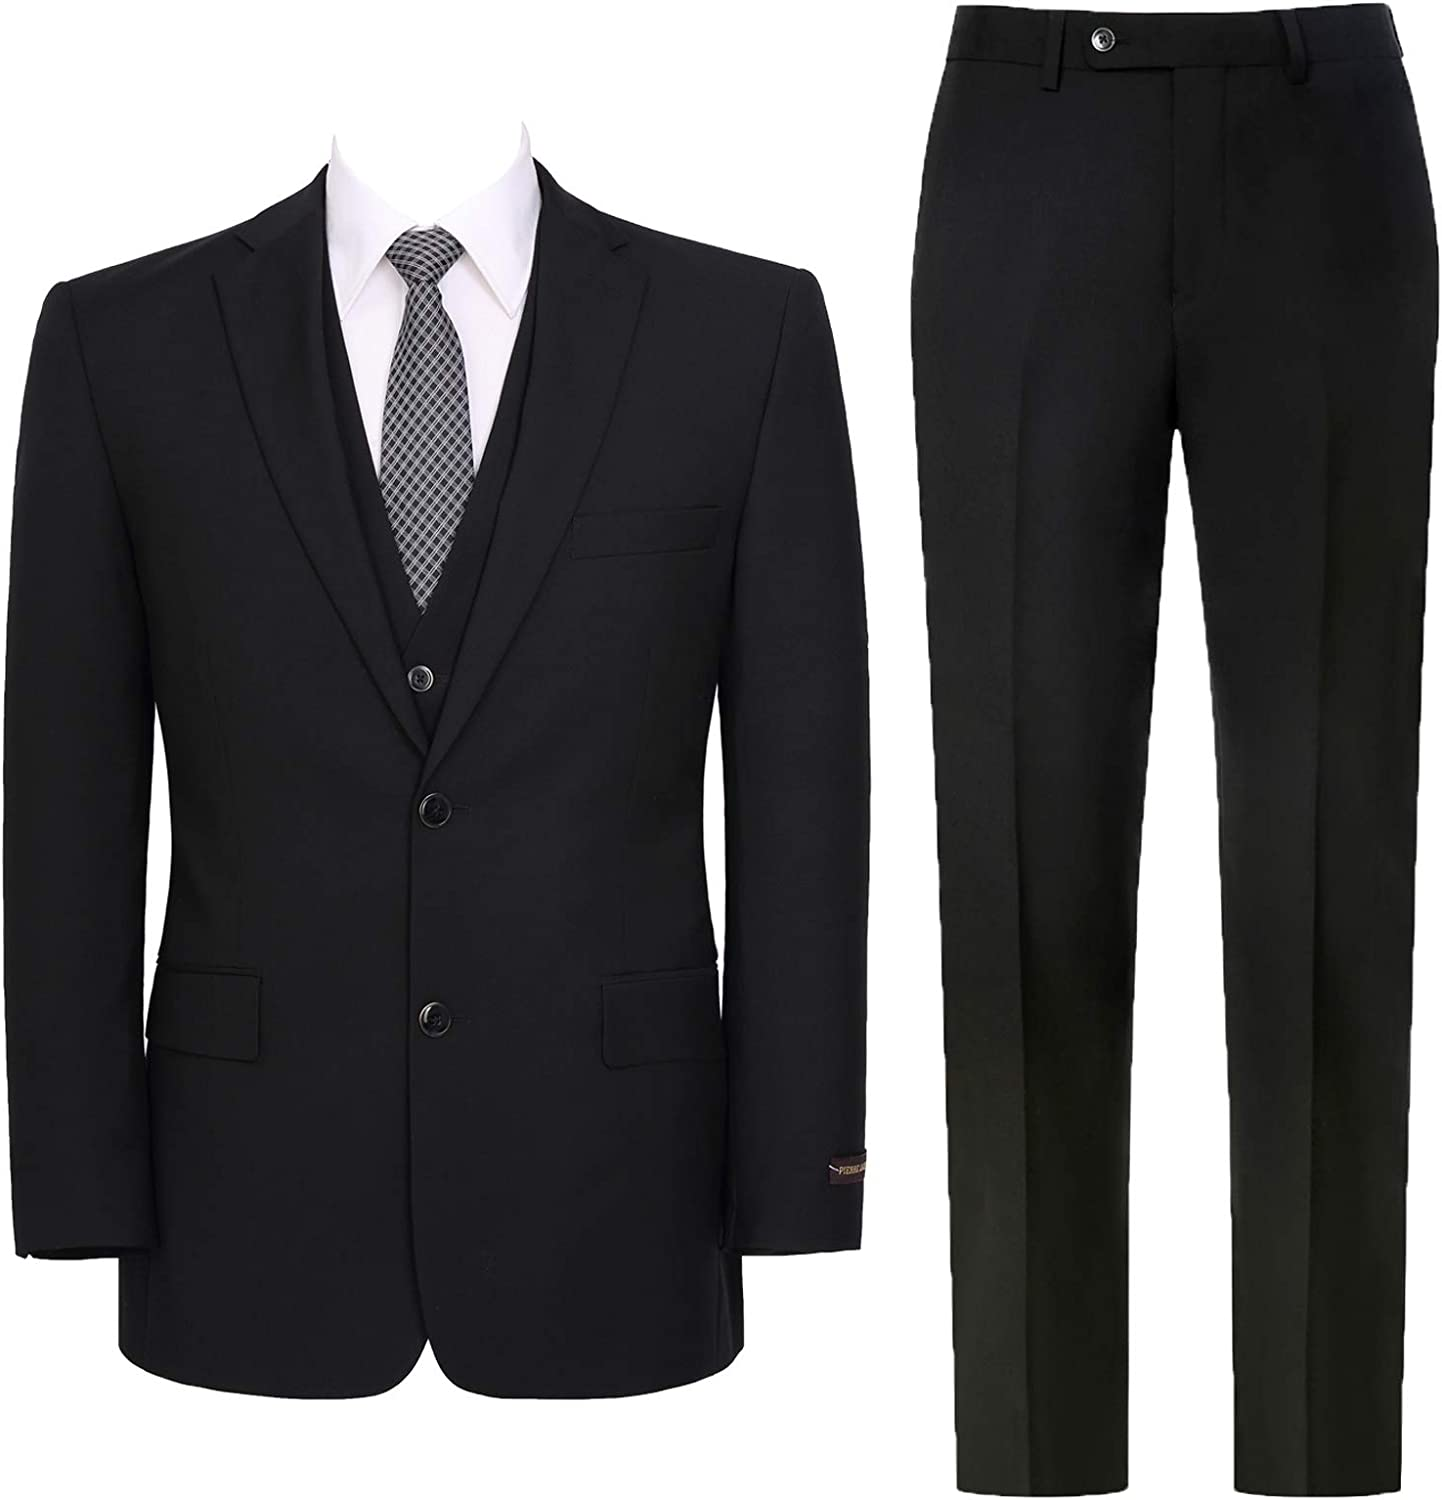 Pio We OFFer at cheap prices Lorenzo Men's 3-Piece Suit Hidden A surprise price is realized Waist Jacket Expandable